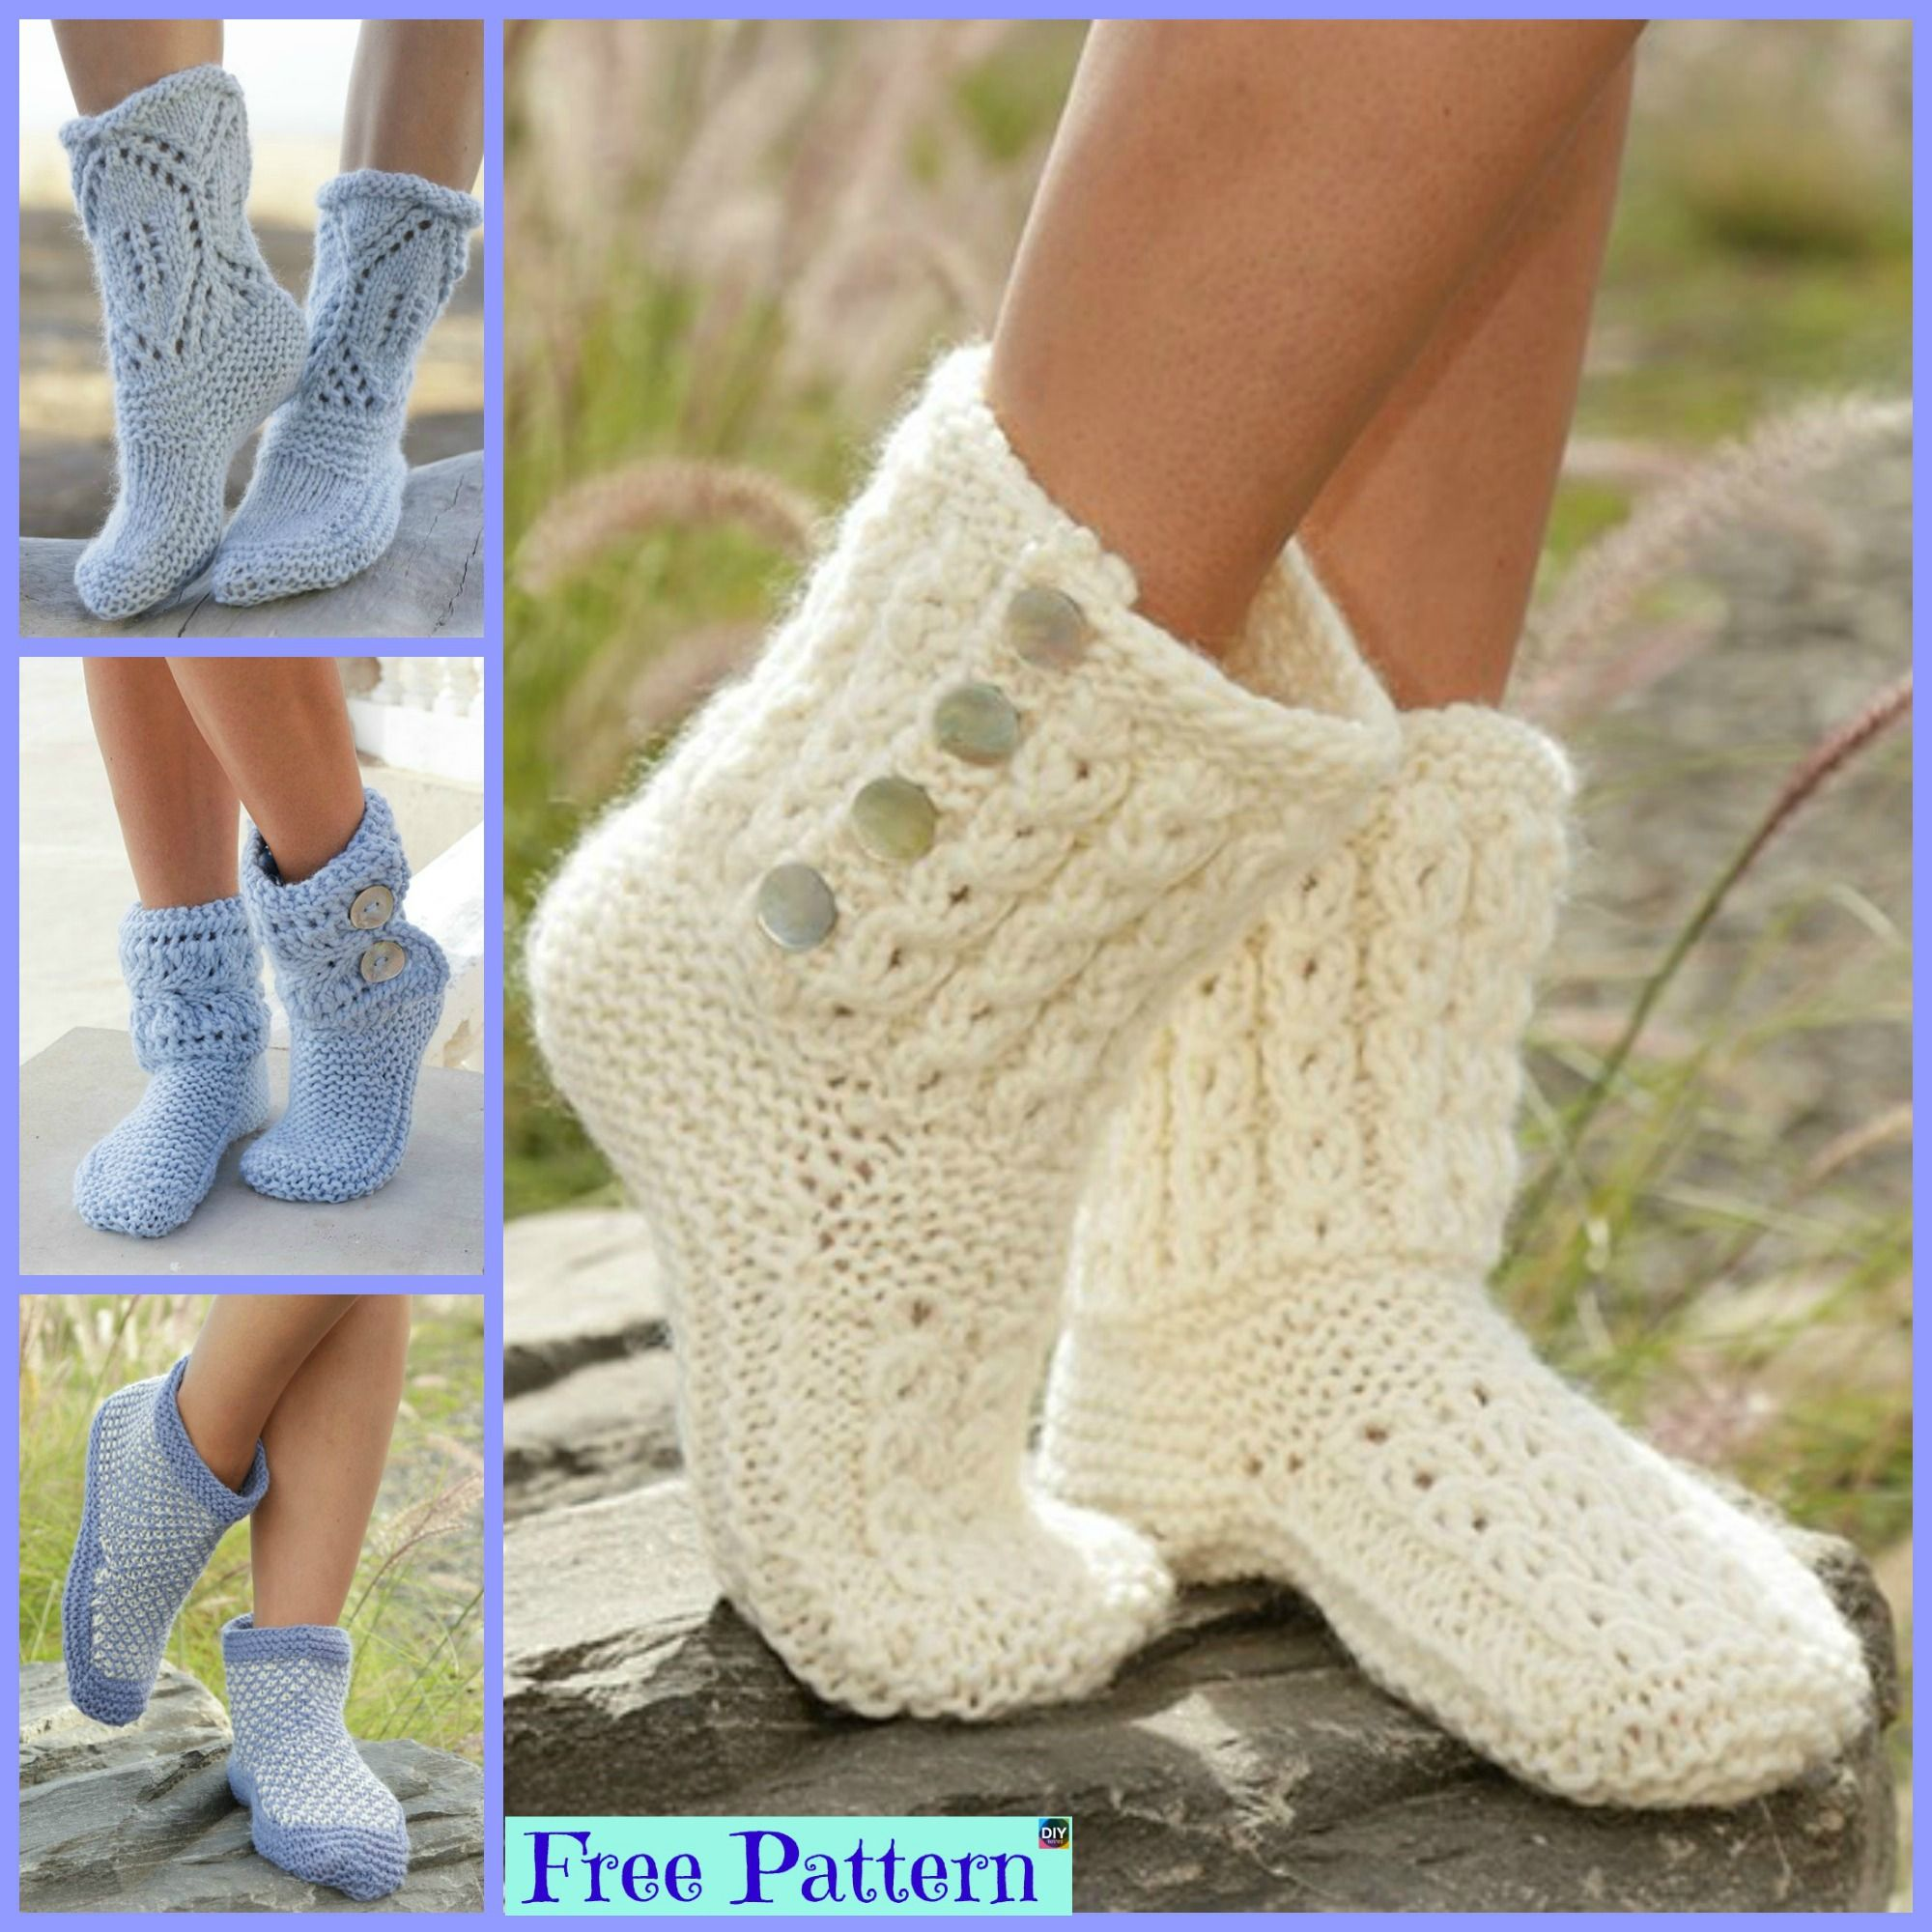 10 Knitted Cozy Slippers Free Patterns | MEDIAS...varios | Pinterest ...